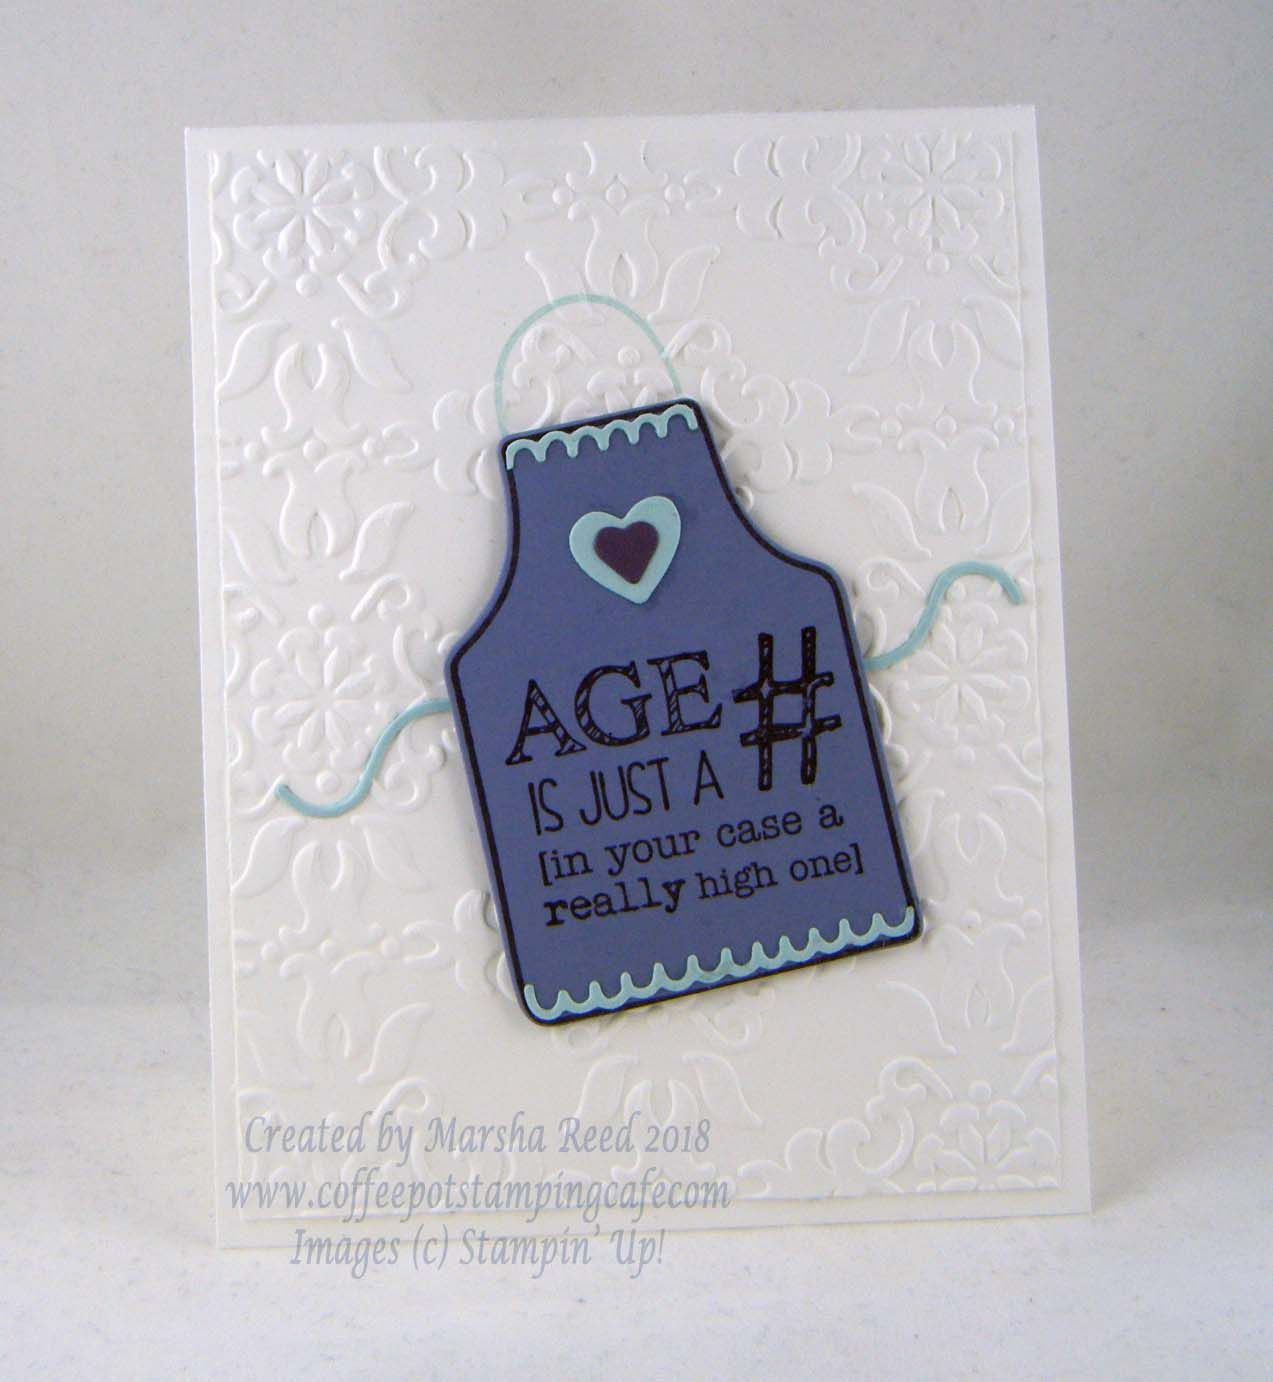 Coffee Pot Stamping Cafe: January 2018